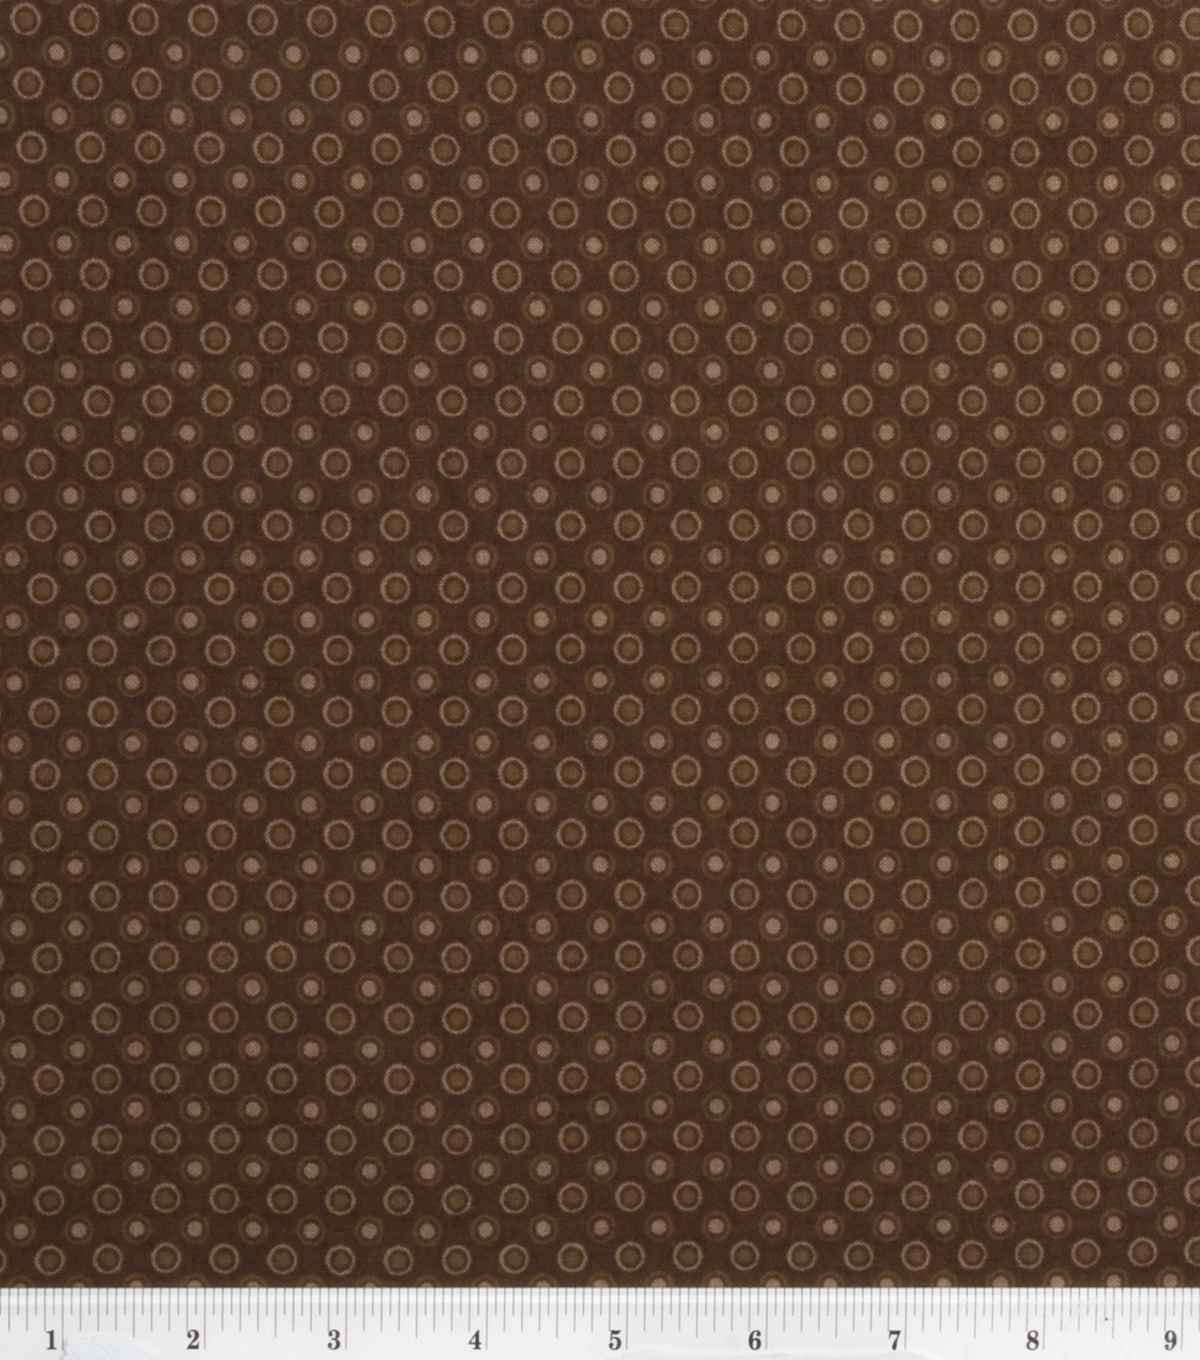 Keepsake Calico Cotton Fabric -Lined Dot Brown